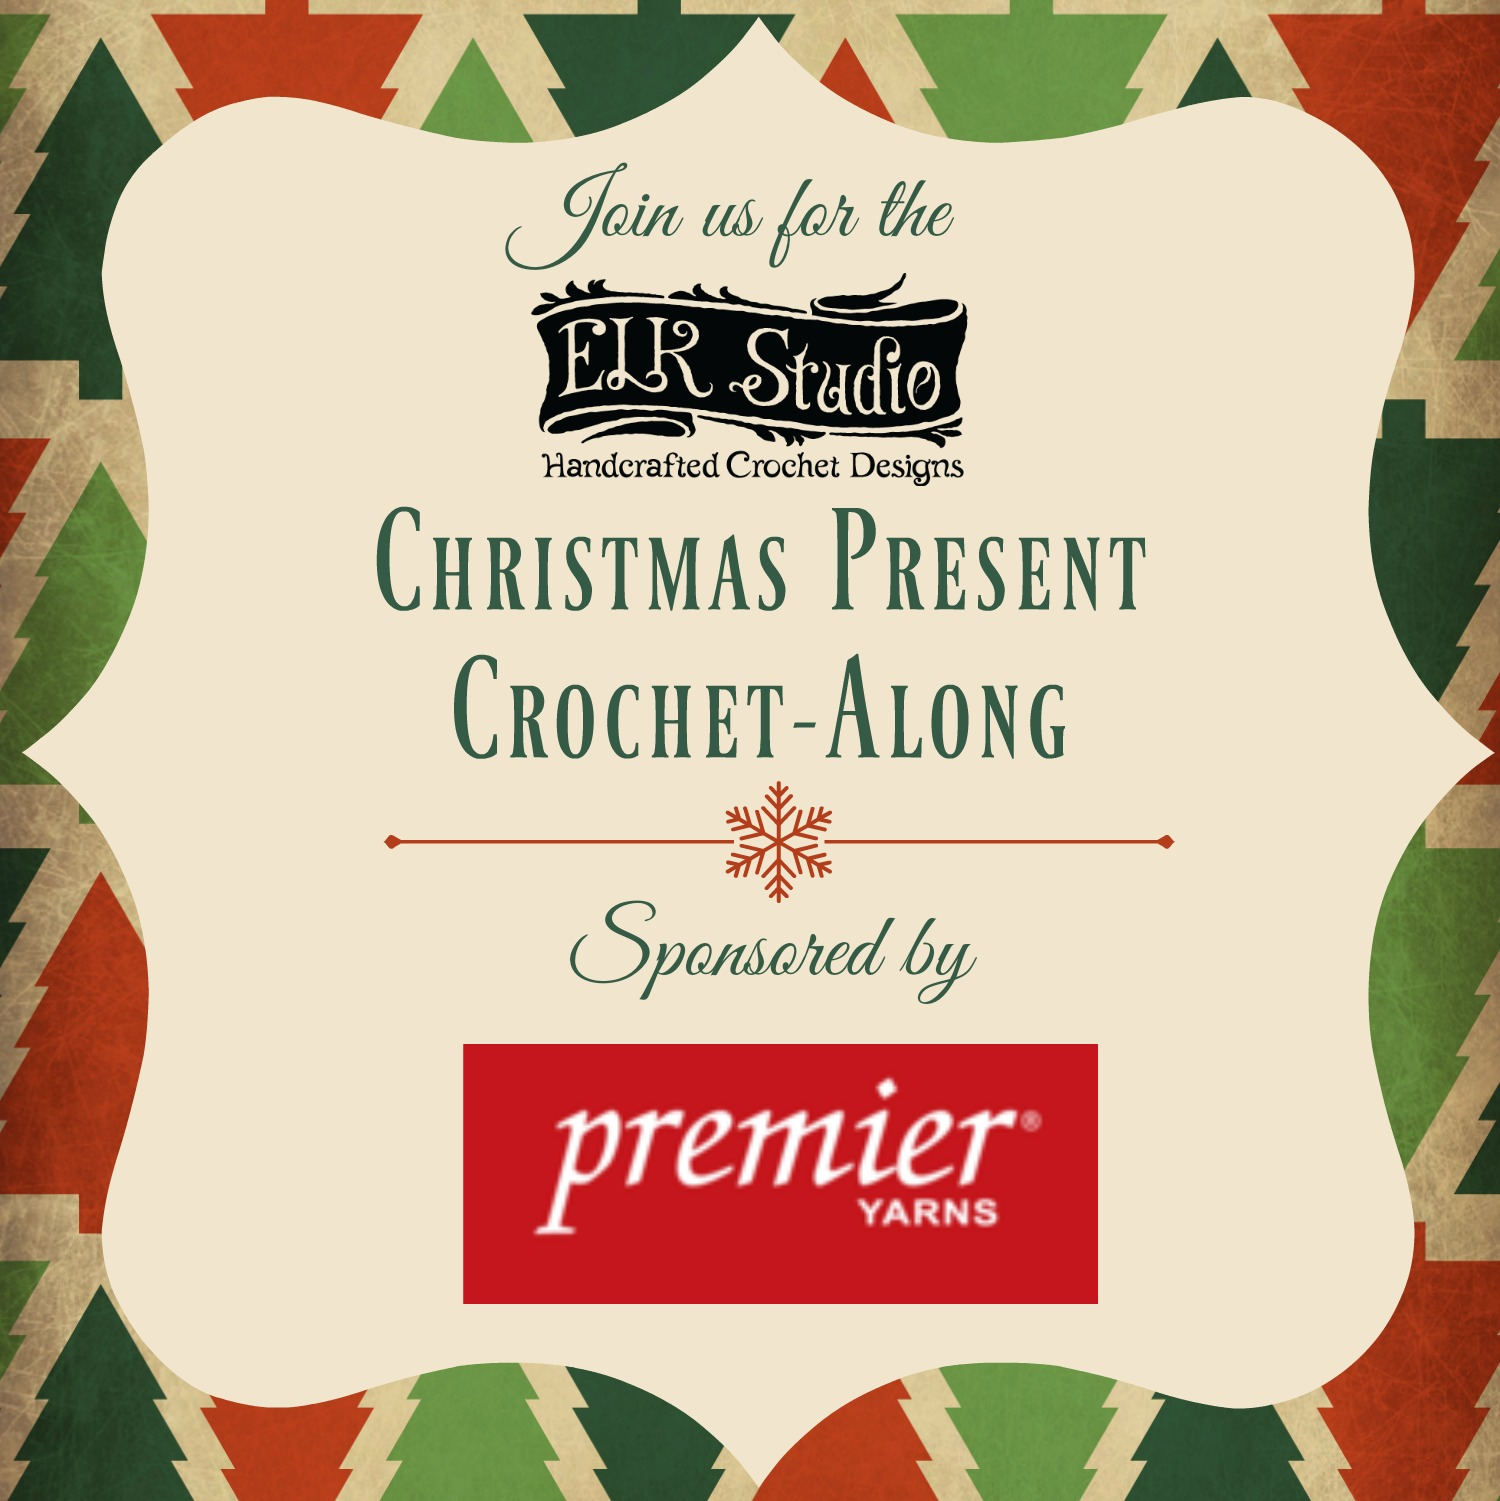 Christmas Present Crochet-Along by ELK Studio Sponsored by Premier Yarns